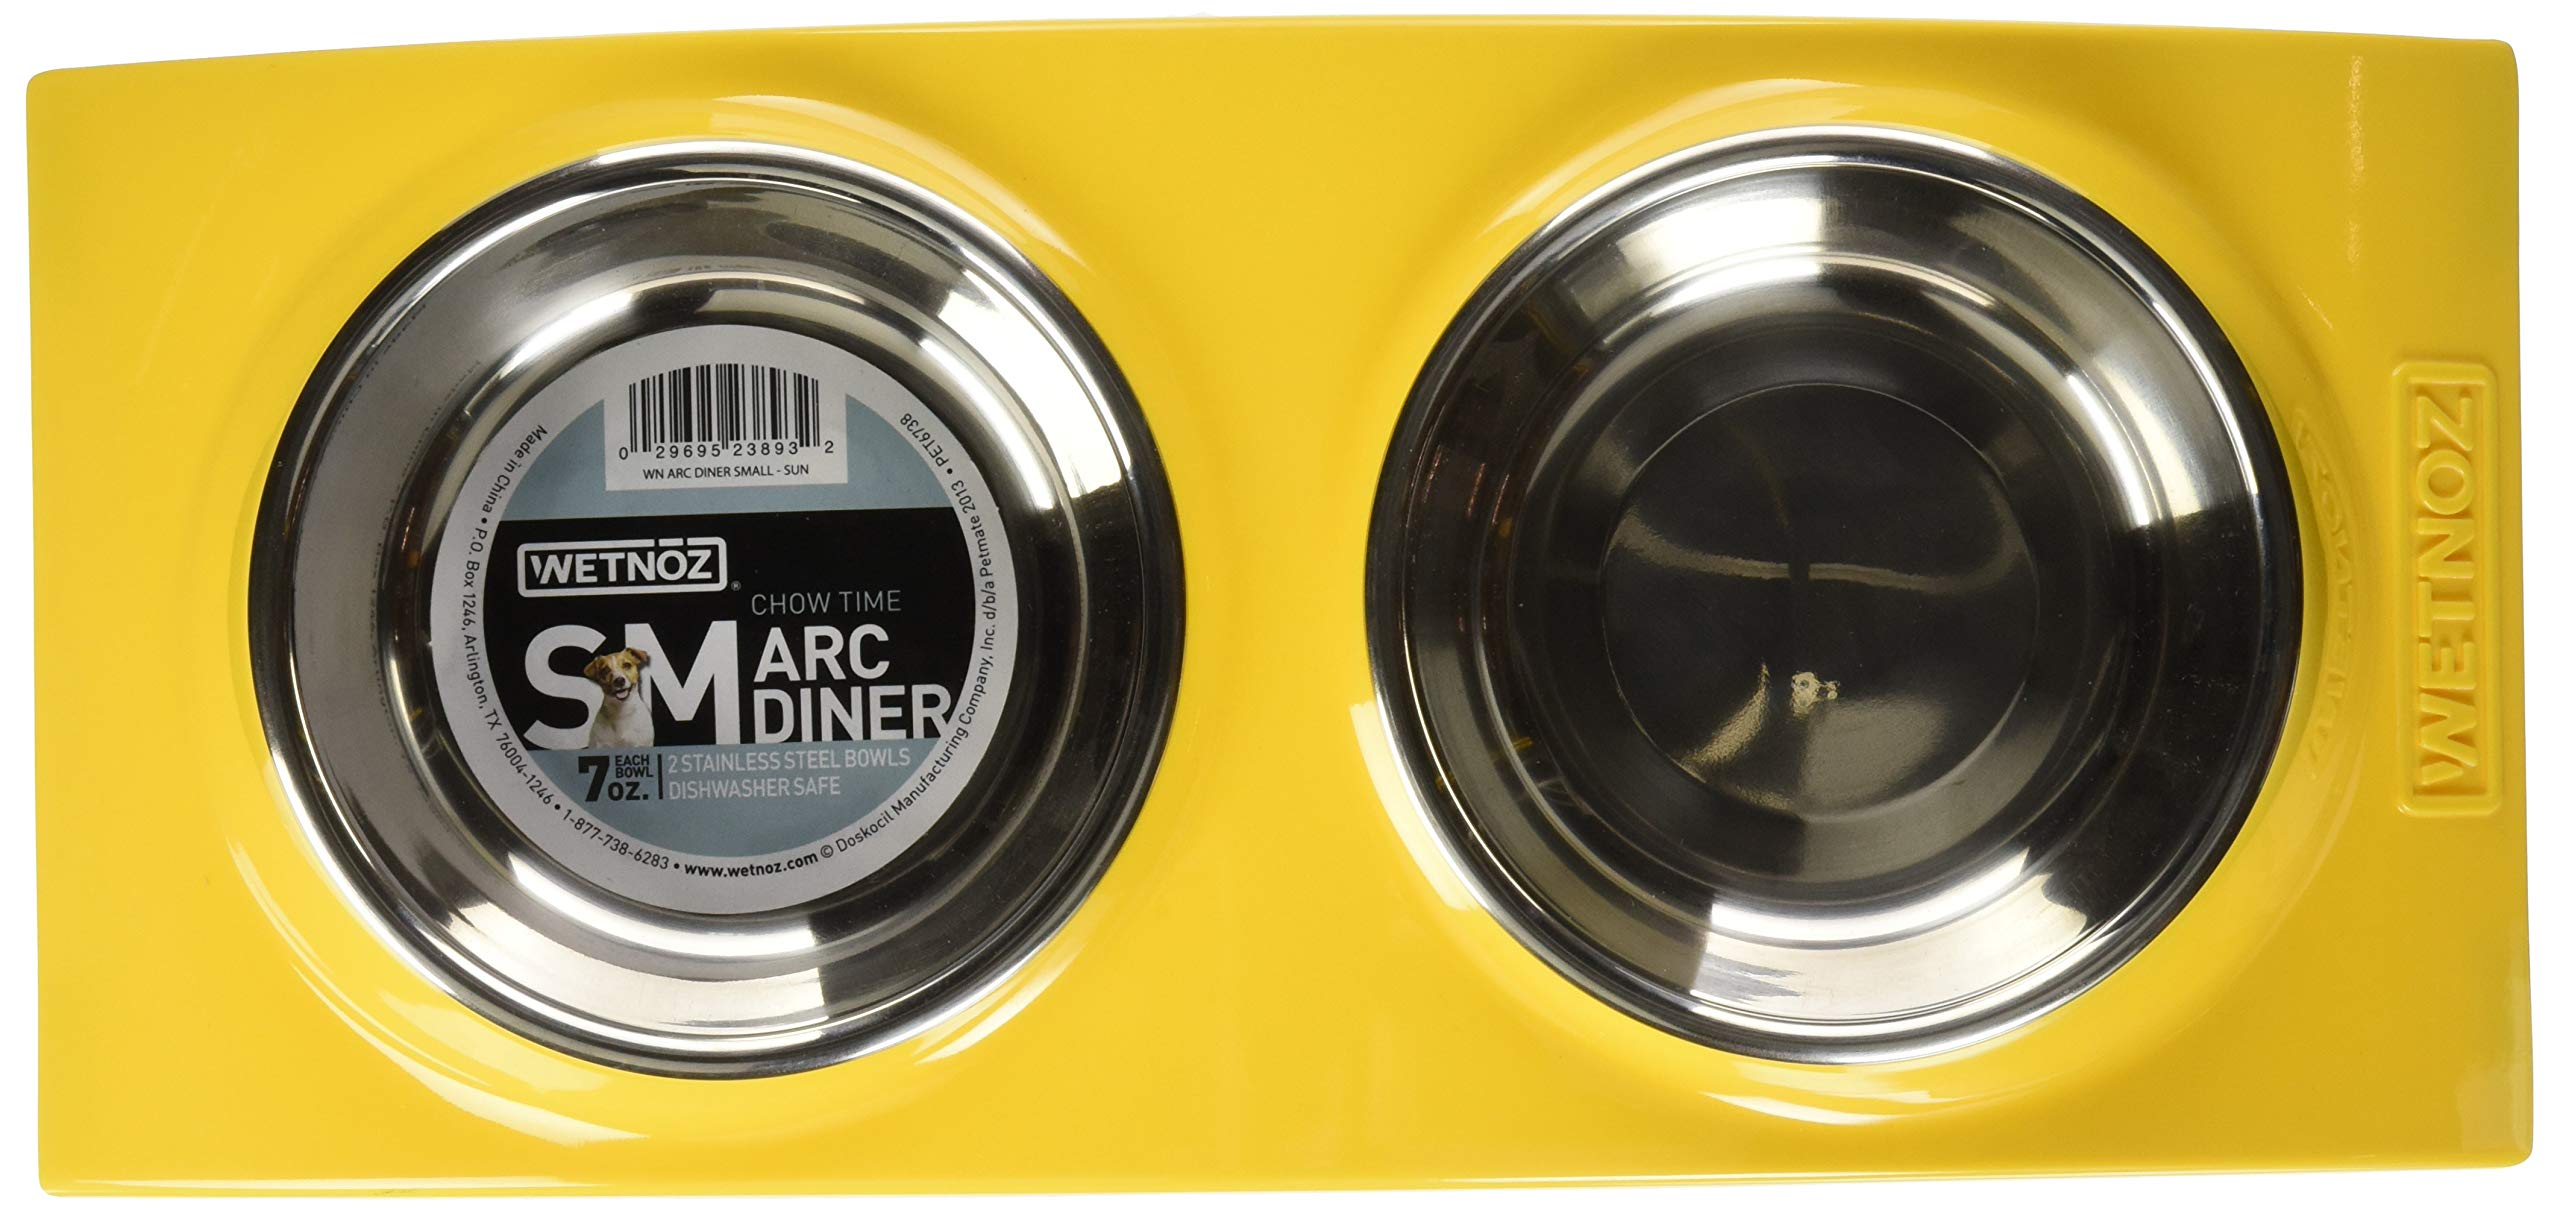 Wetnoz 23893 Arc Diner for Pets, Small, Sun by Petmate (Image #2)